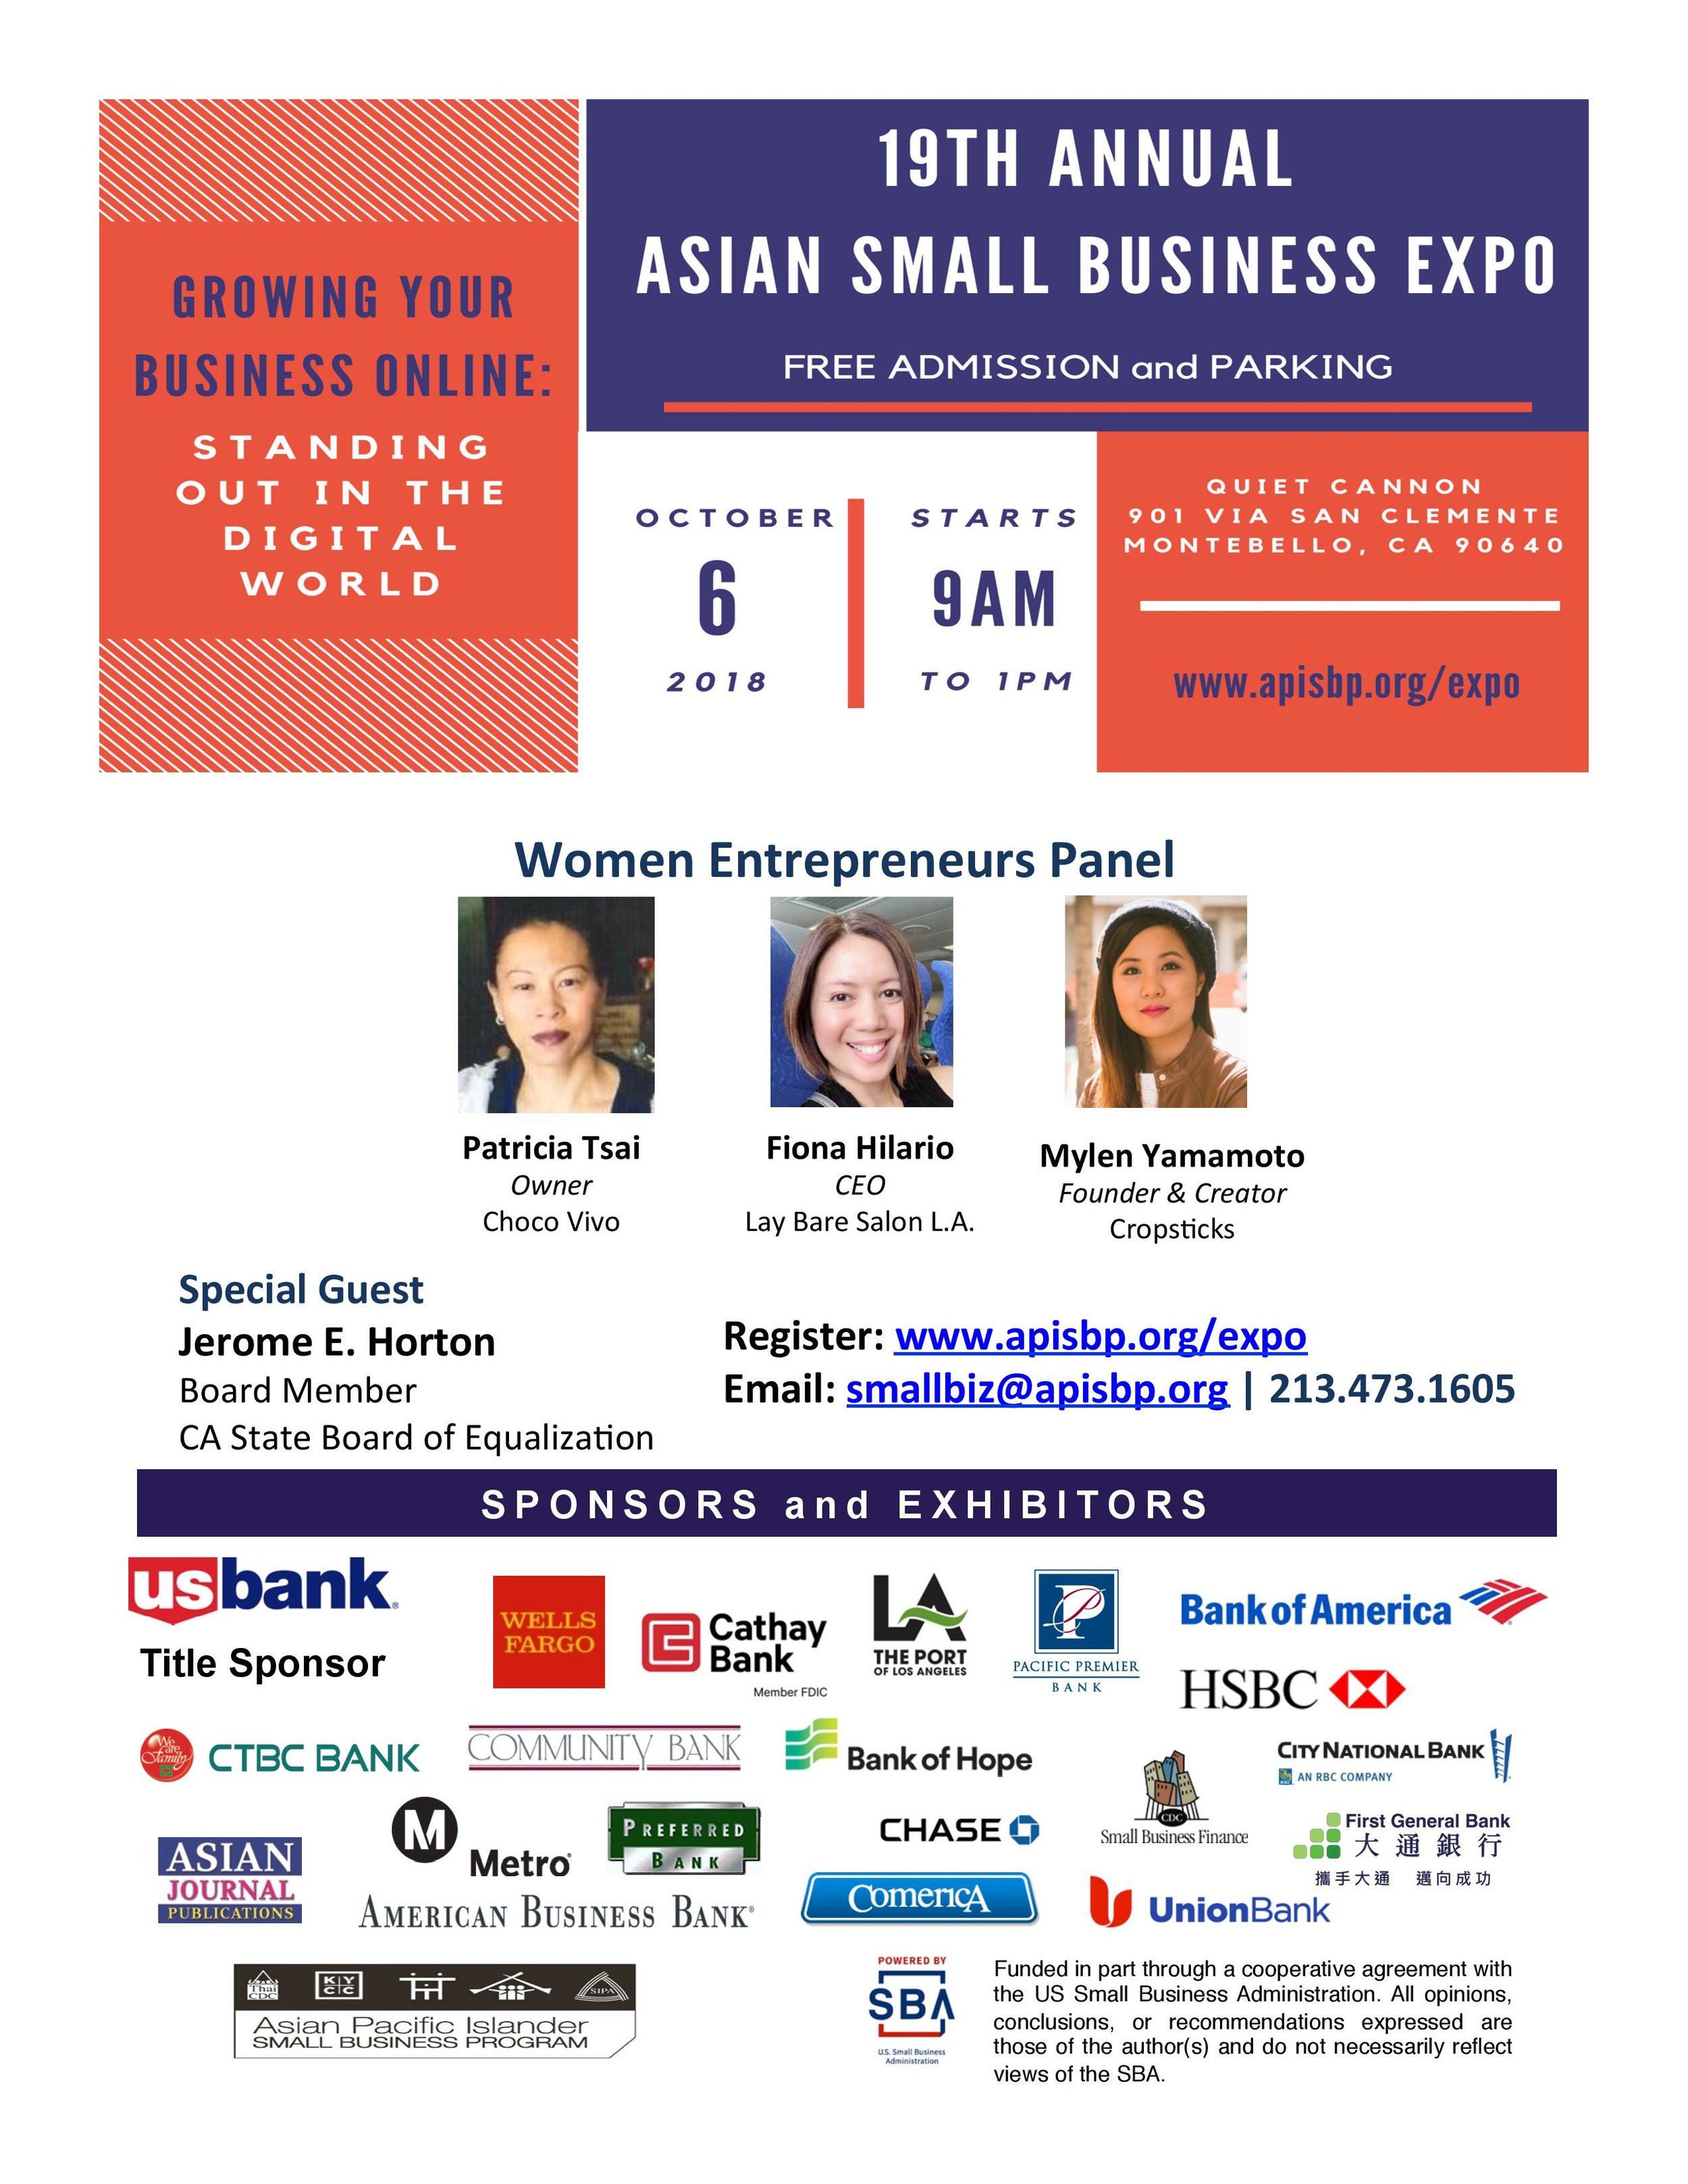 19th Annual asian small business expo - October 6th, 2018